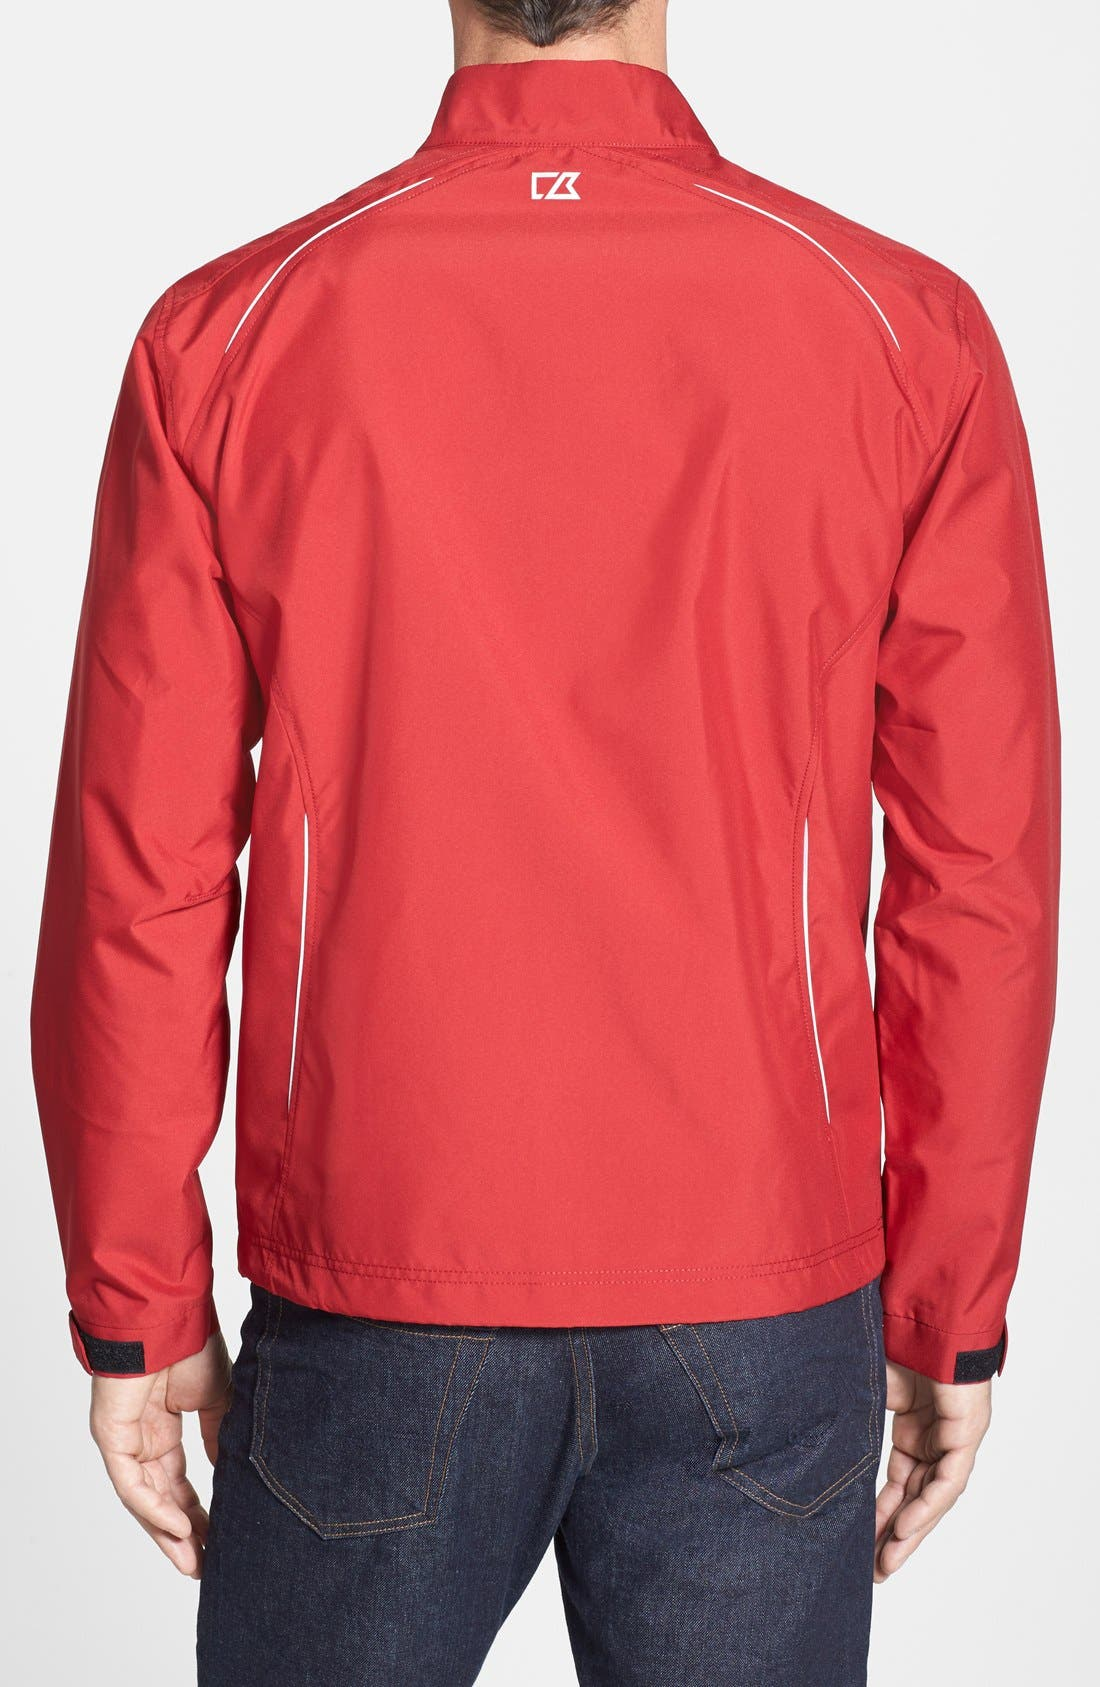 Alternate Image 2  - Cutter & Buck San Francisco 49ers - Beacon WeatherTec Wind & Water Resistant Jacket